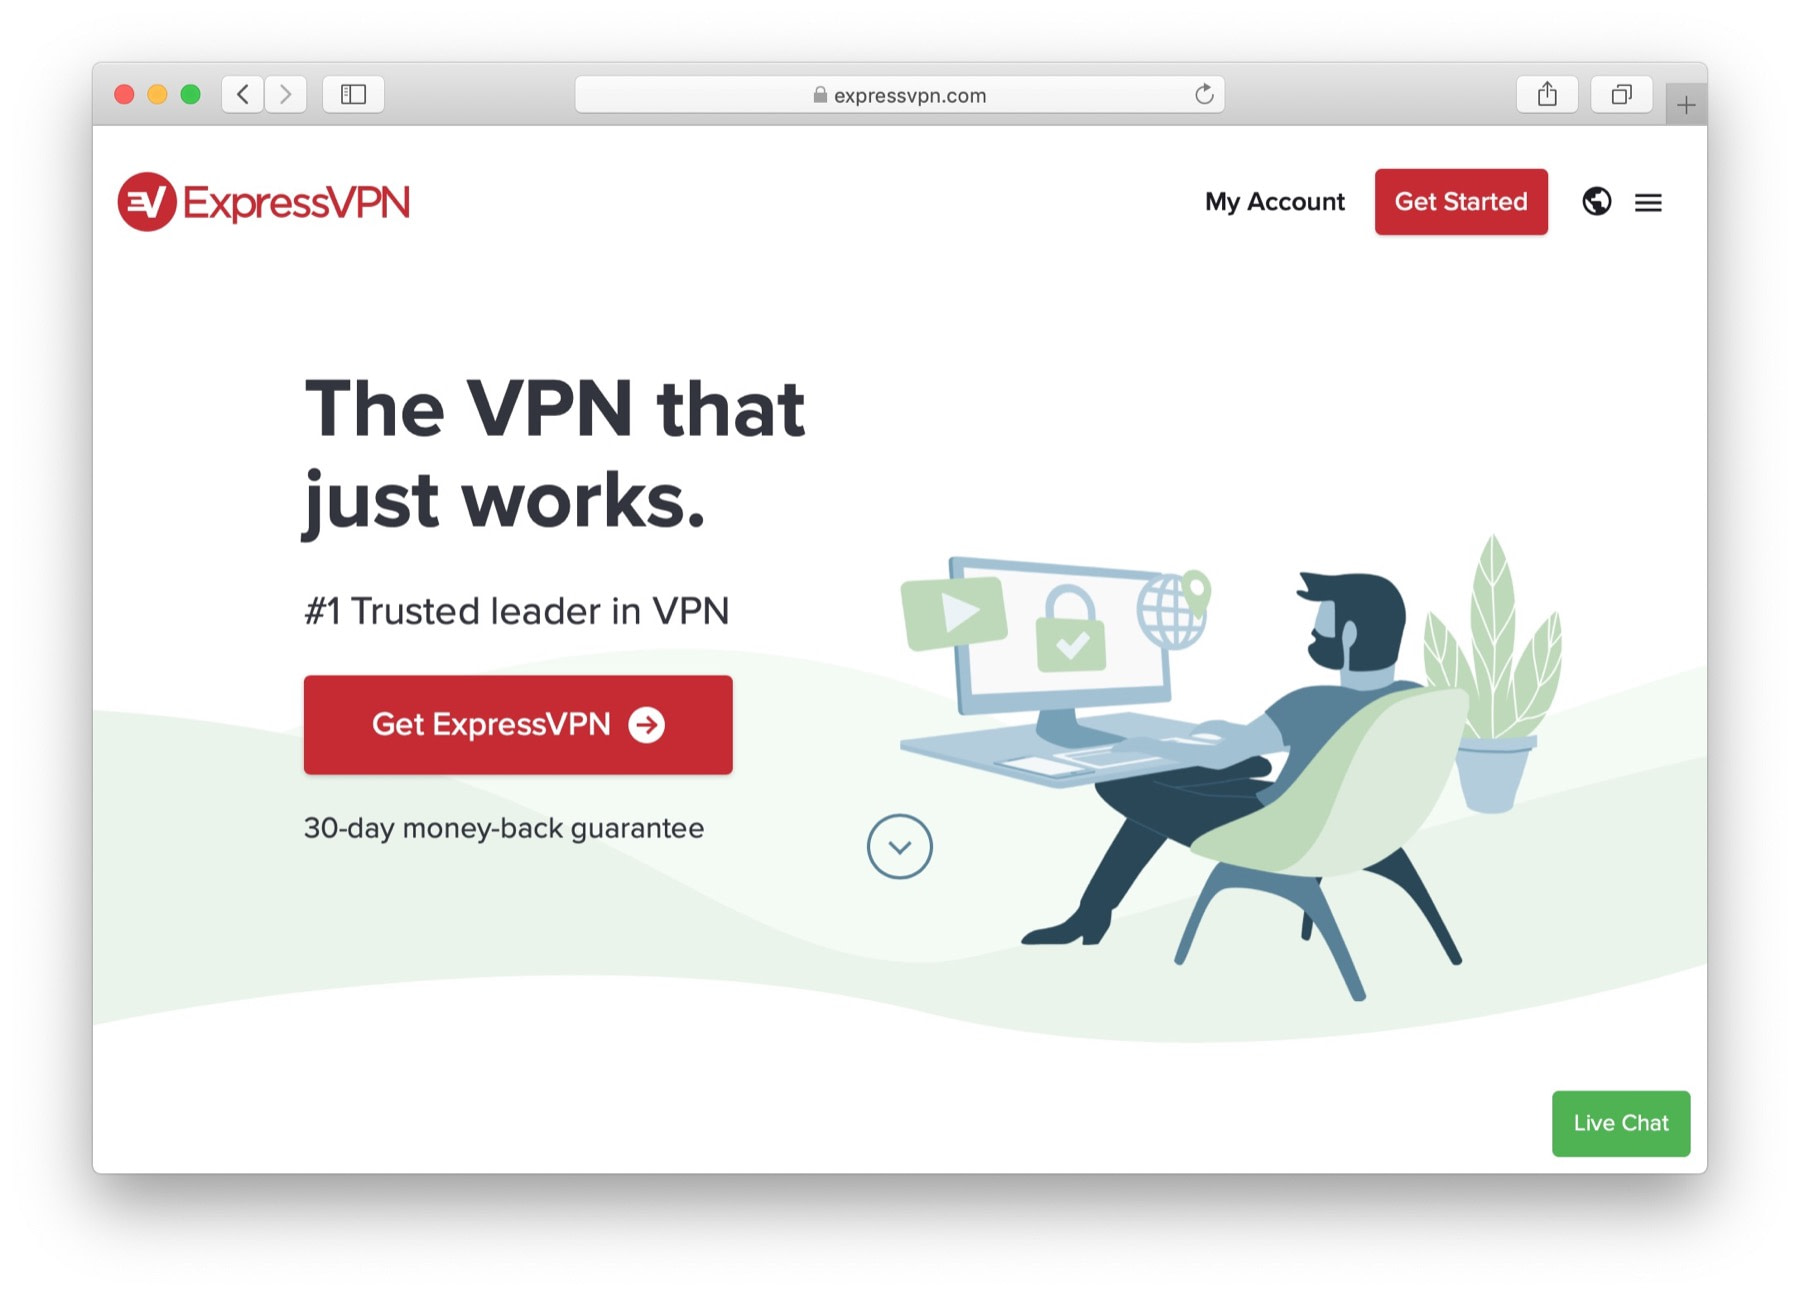 expressvpn is one of the best vpn services for WordPress users